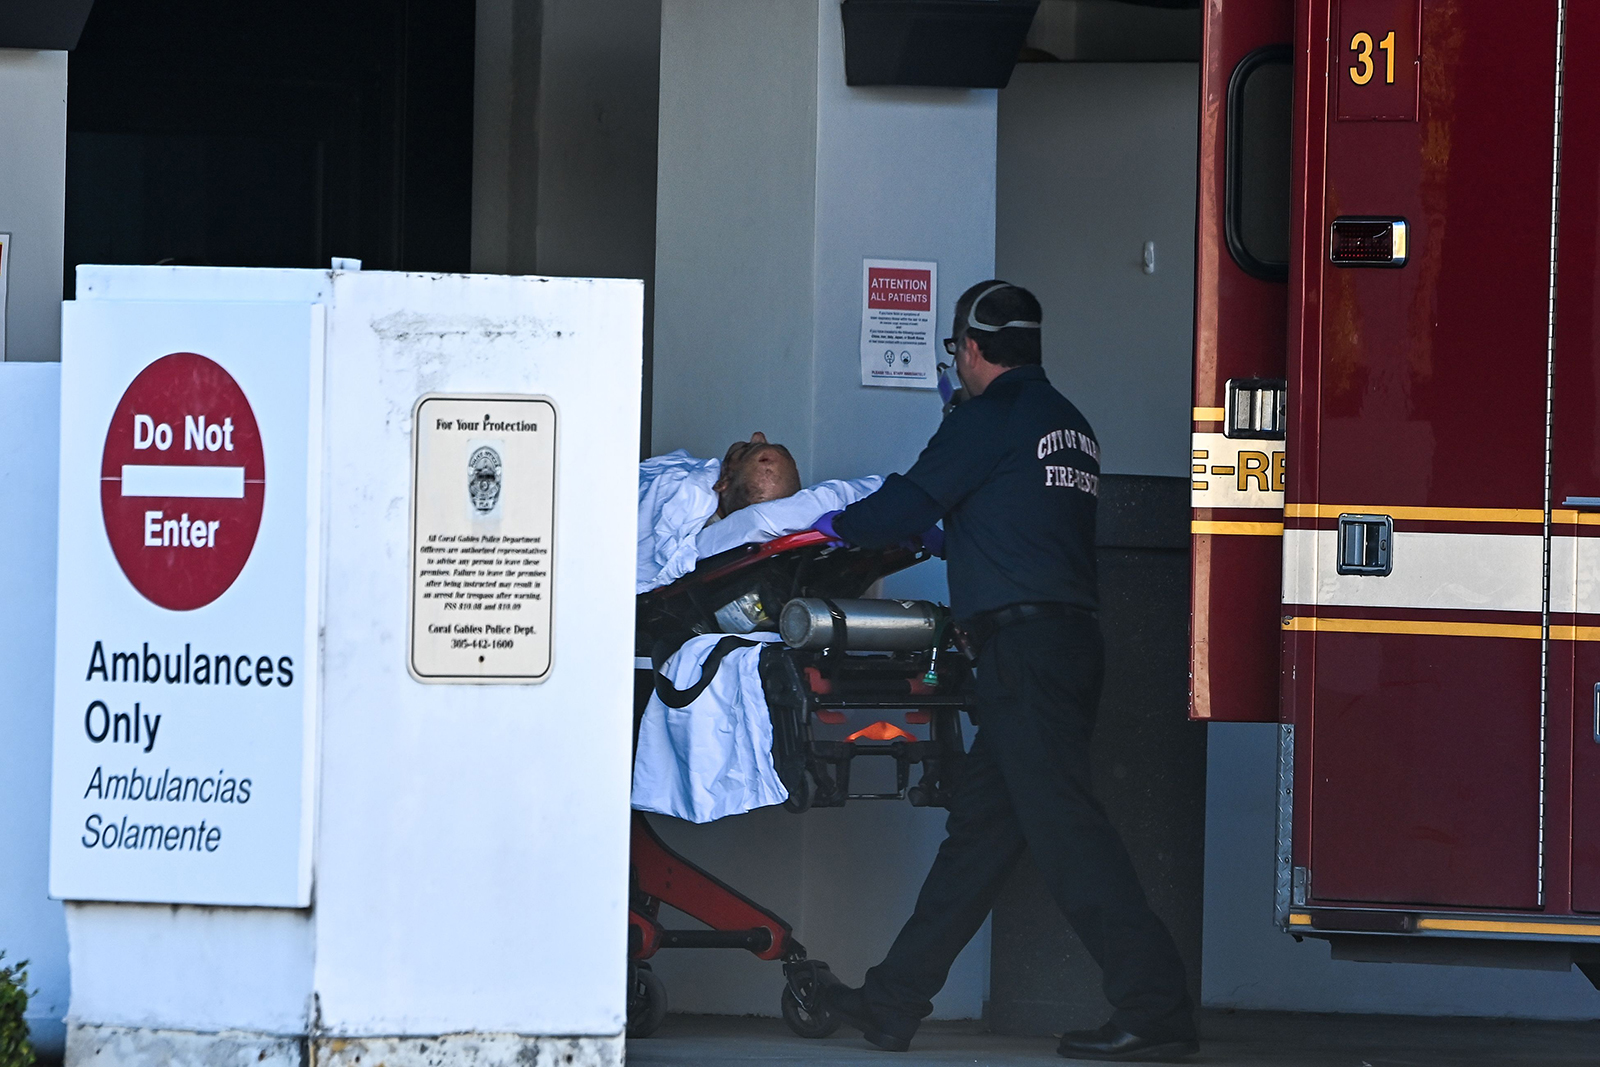 A medic transfers a patient on a stretcher from an ambulance outside of Emergency at Coral Gables Hospital where Coronavirus patients are treated in Coral Gables near Miami, Florida on December 10.